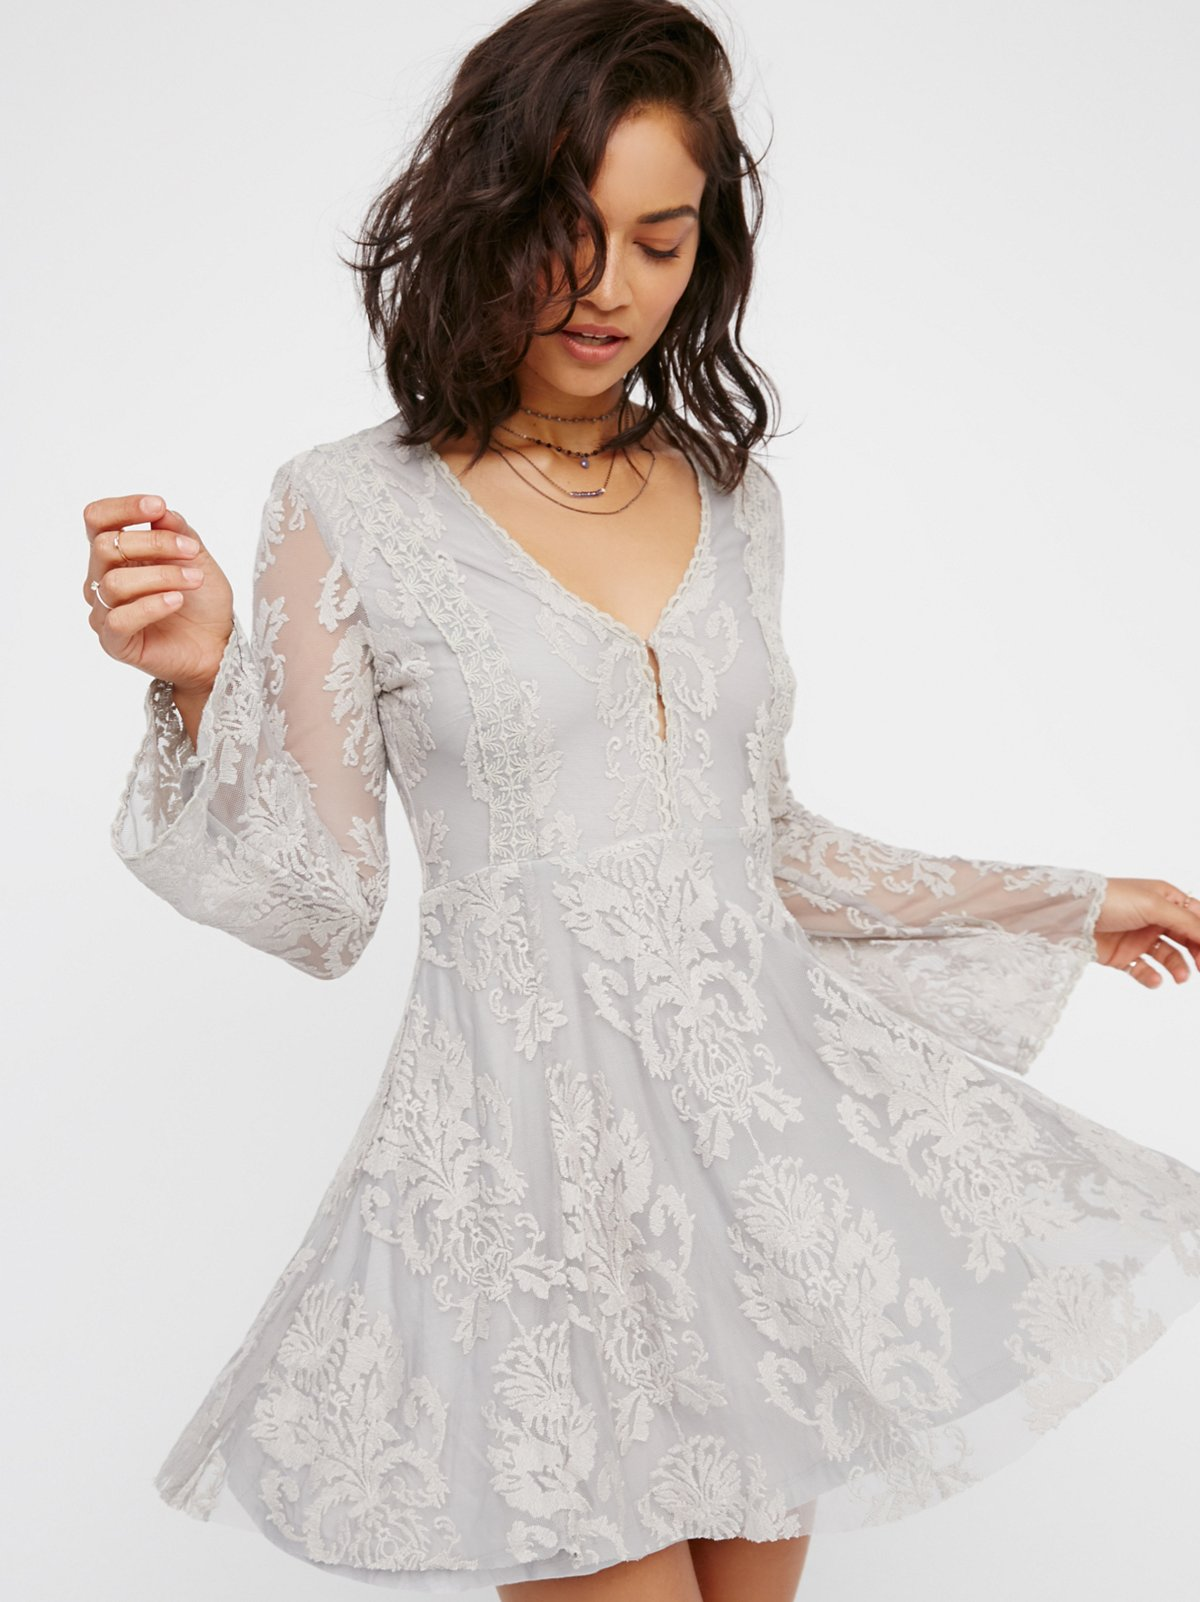 Reign Over Me Lace Dress